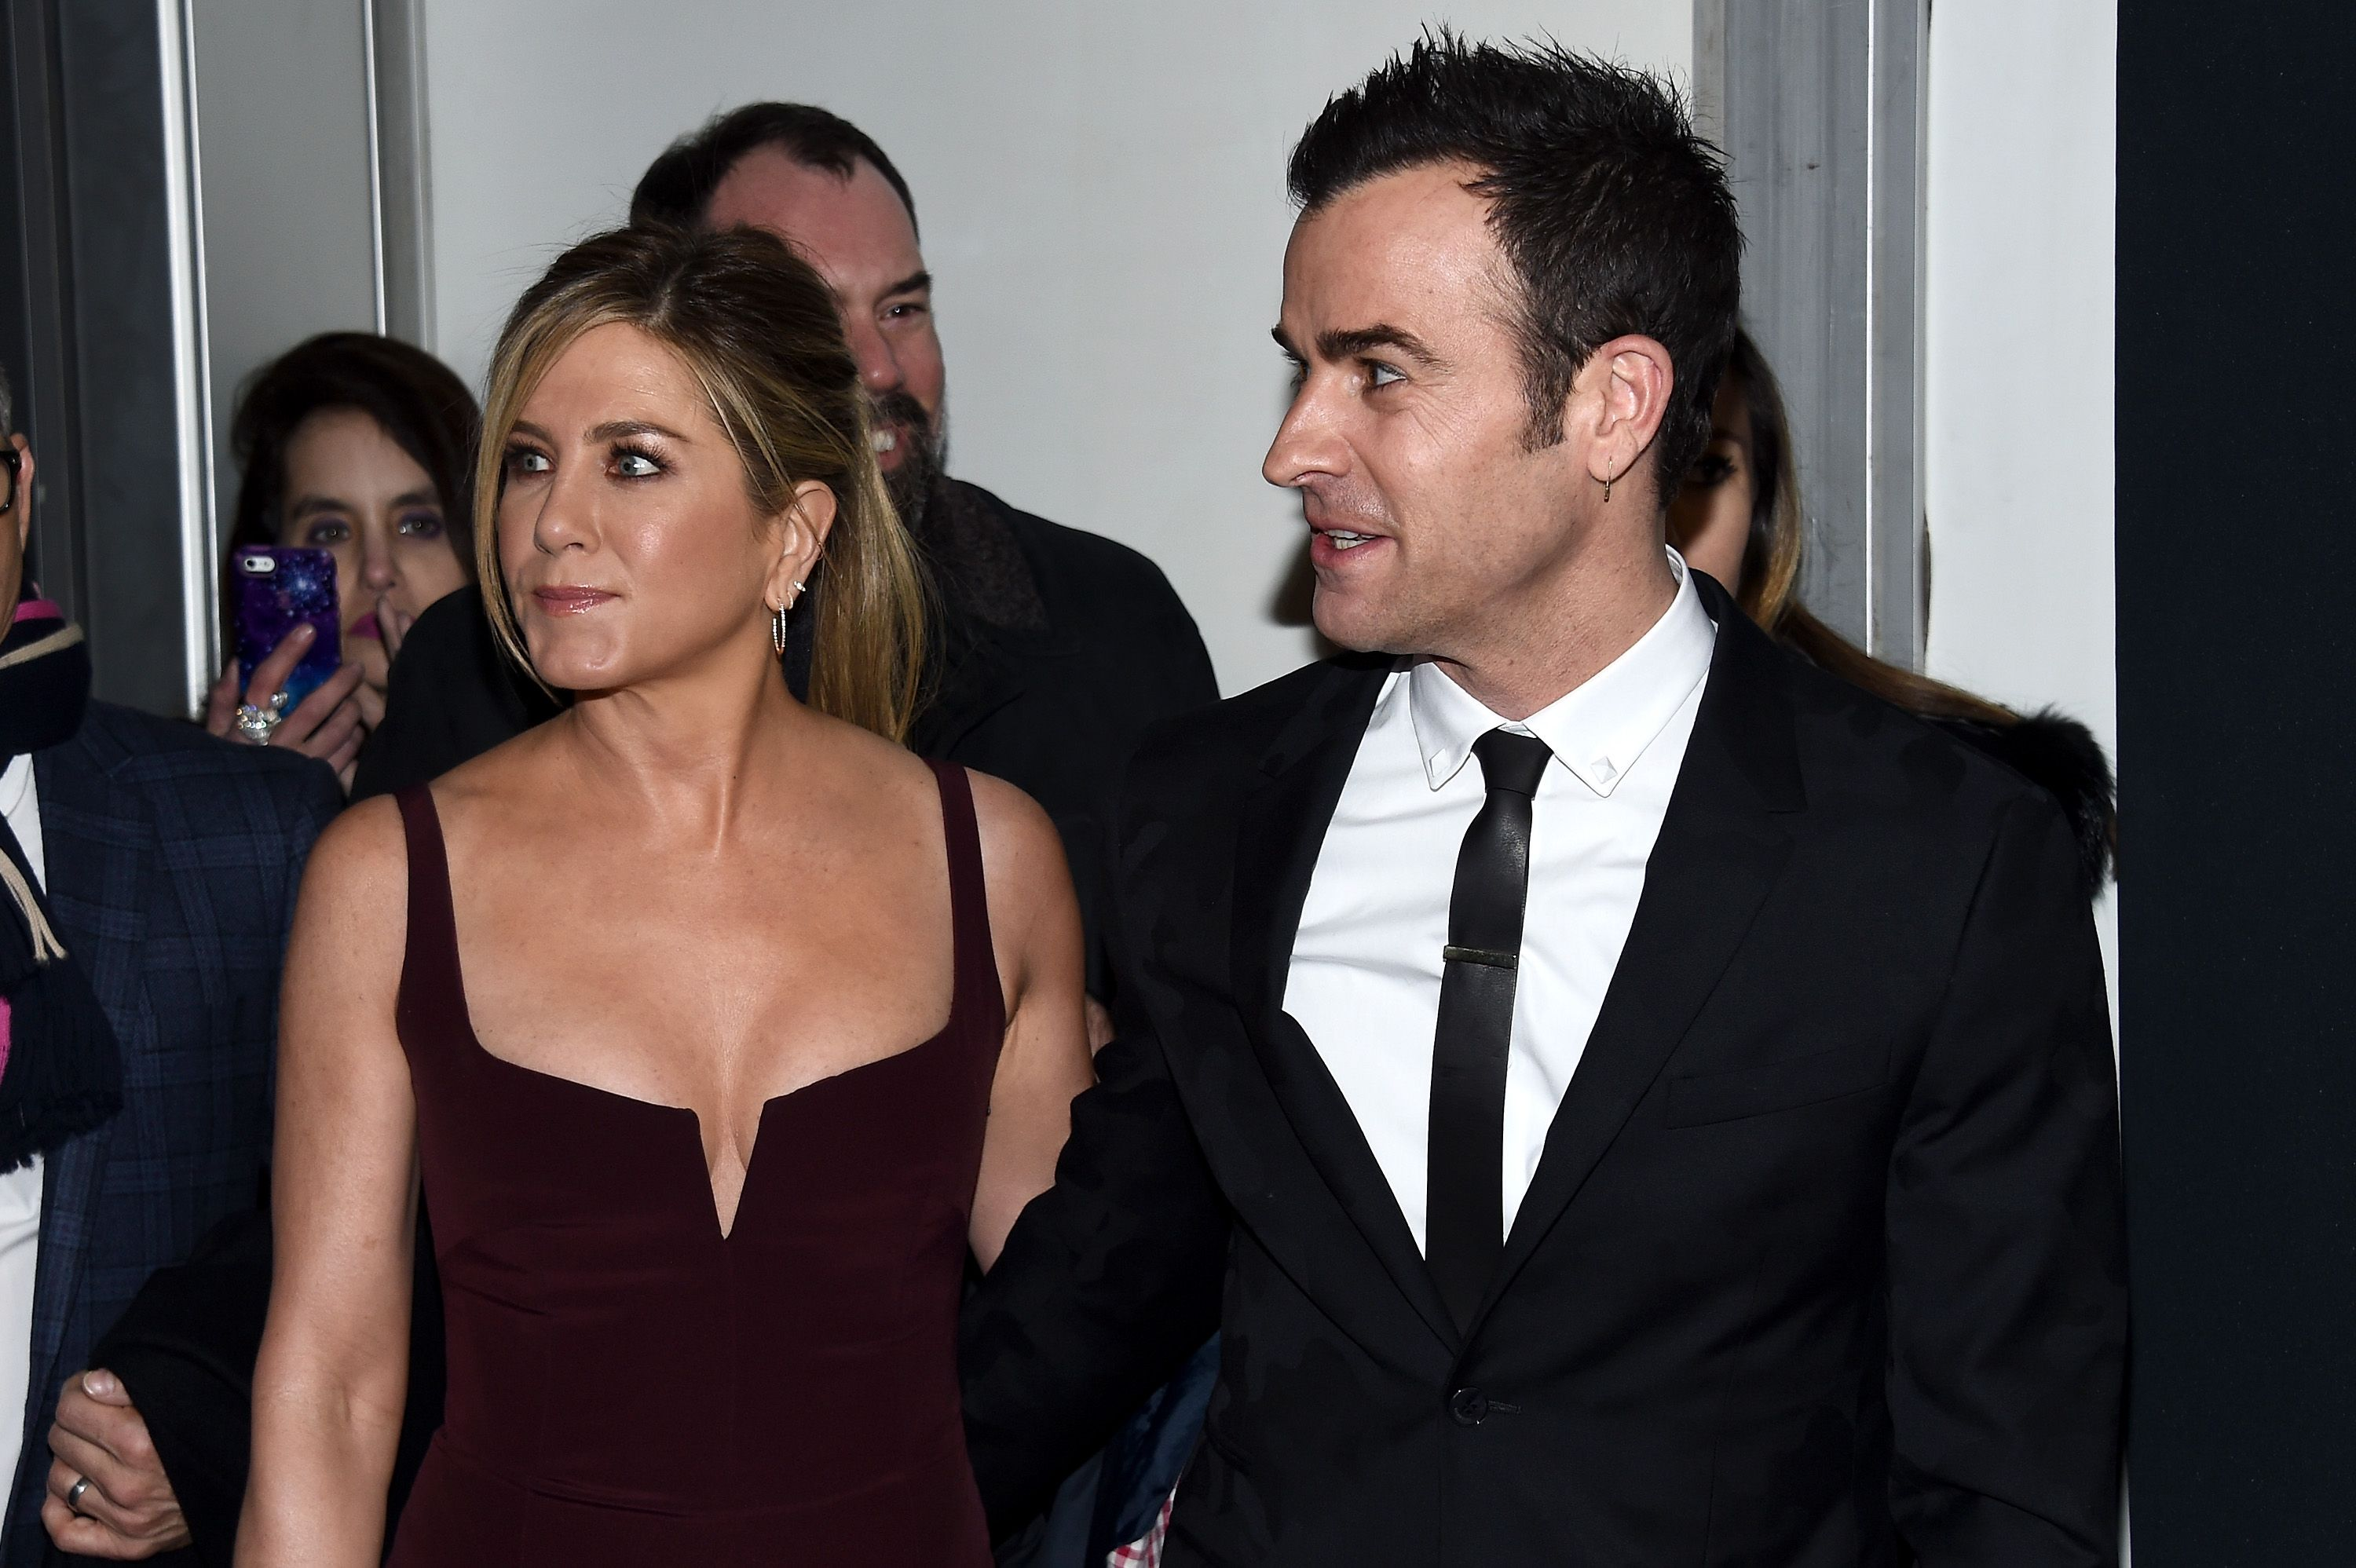 Friends' Jennifer Aniston forced ex-husband Justin Theroux to follow her on Instagram